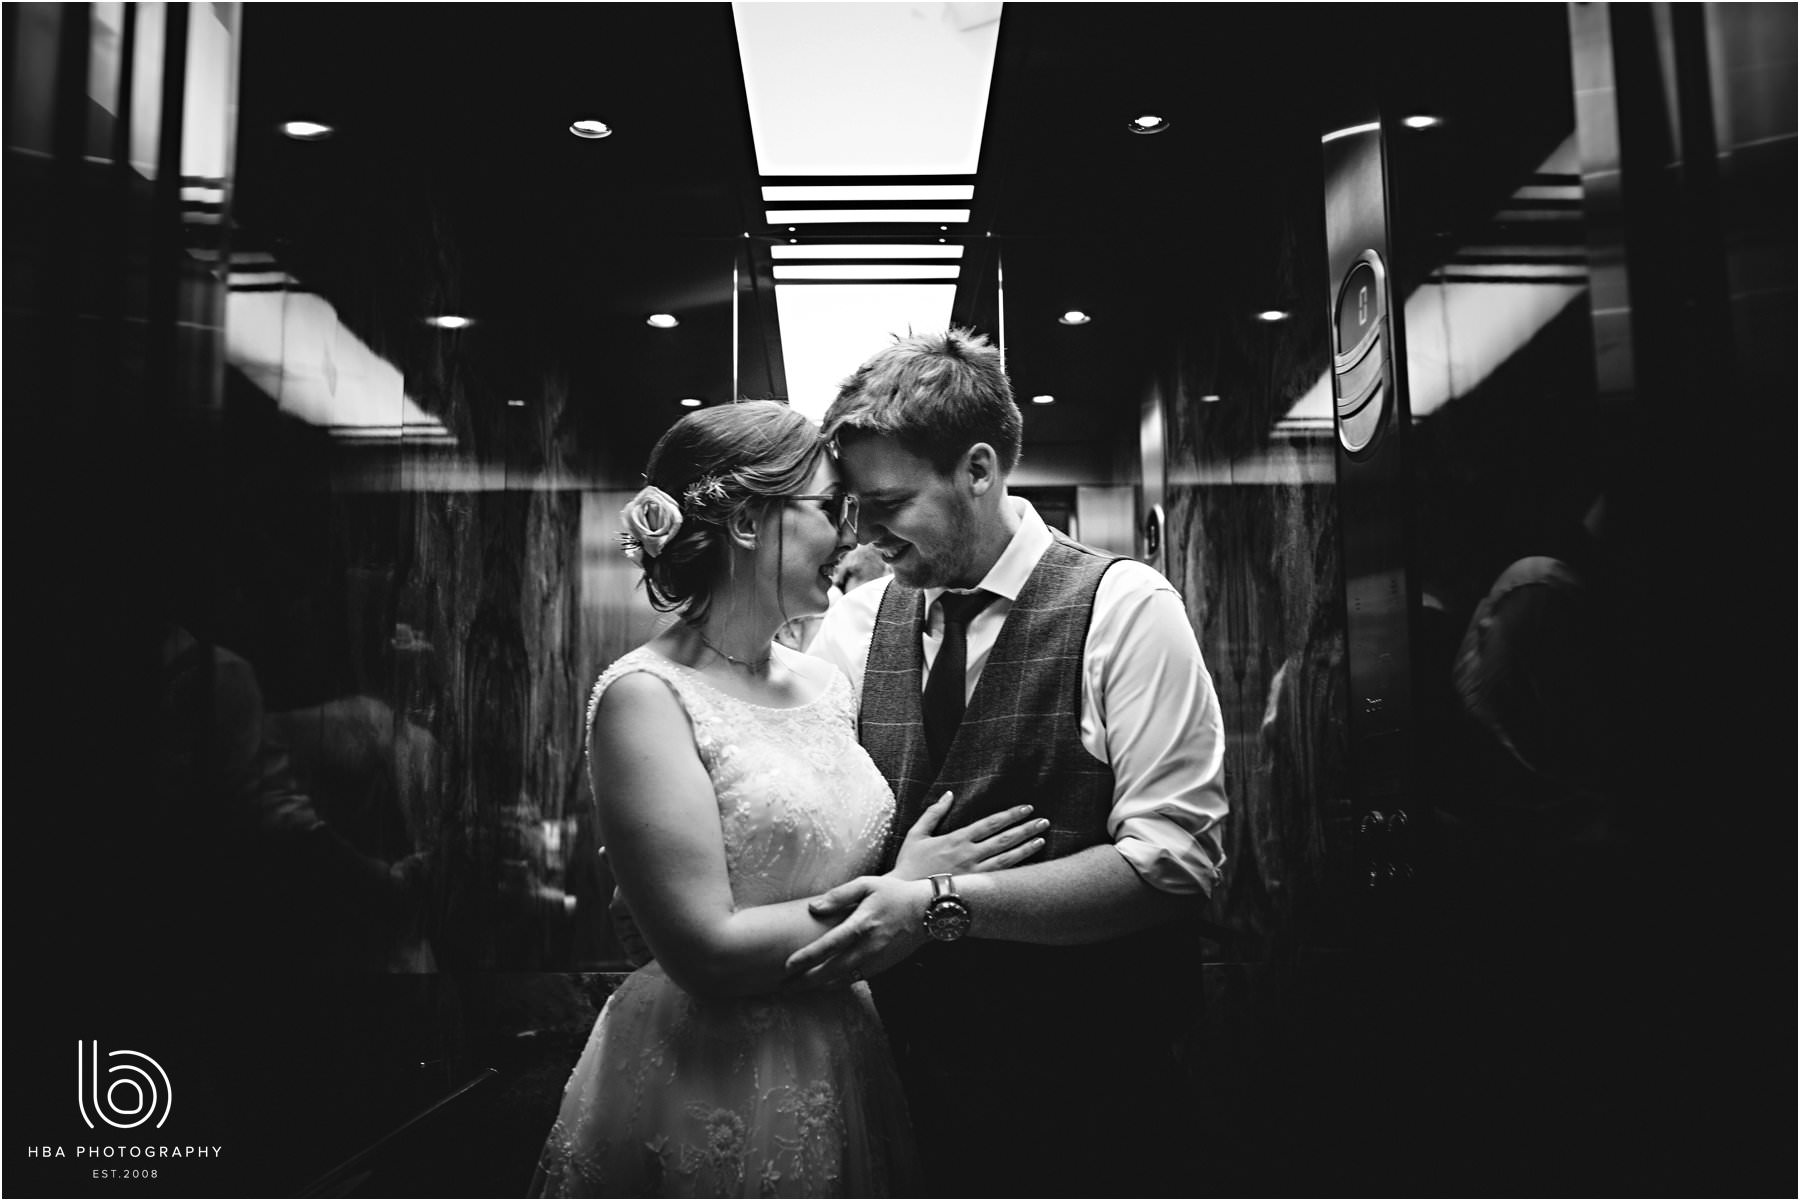 the bride & groom in the lift